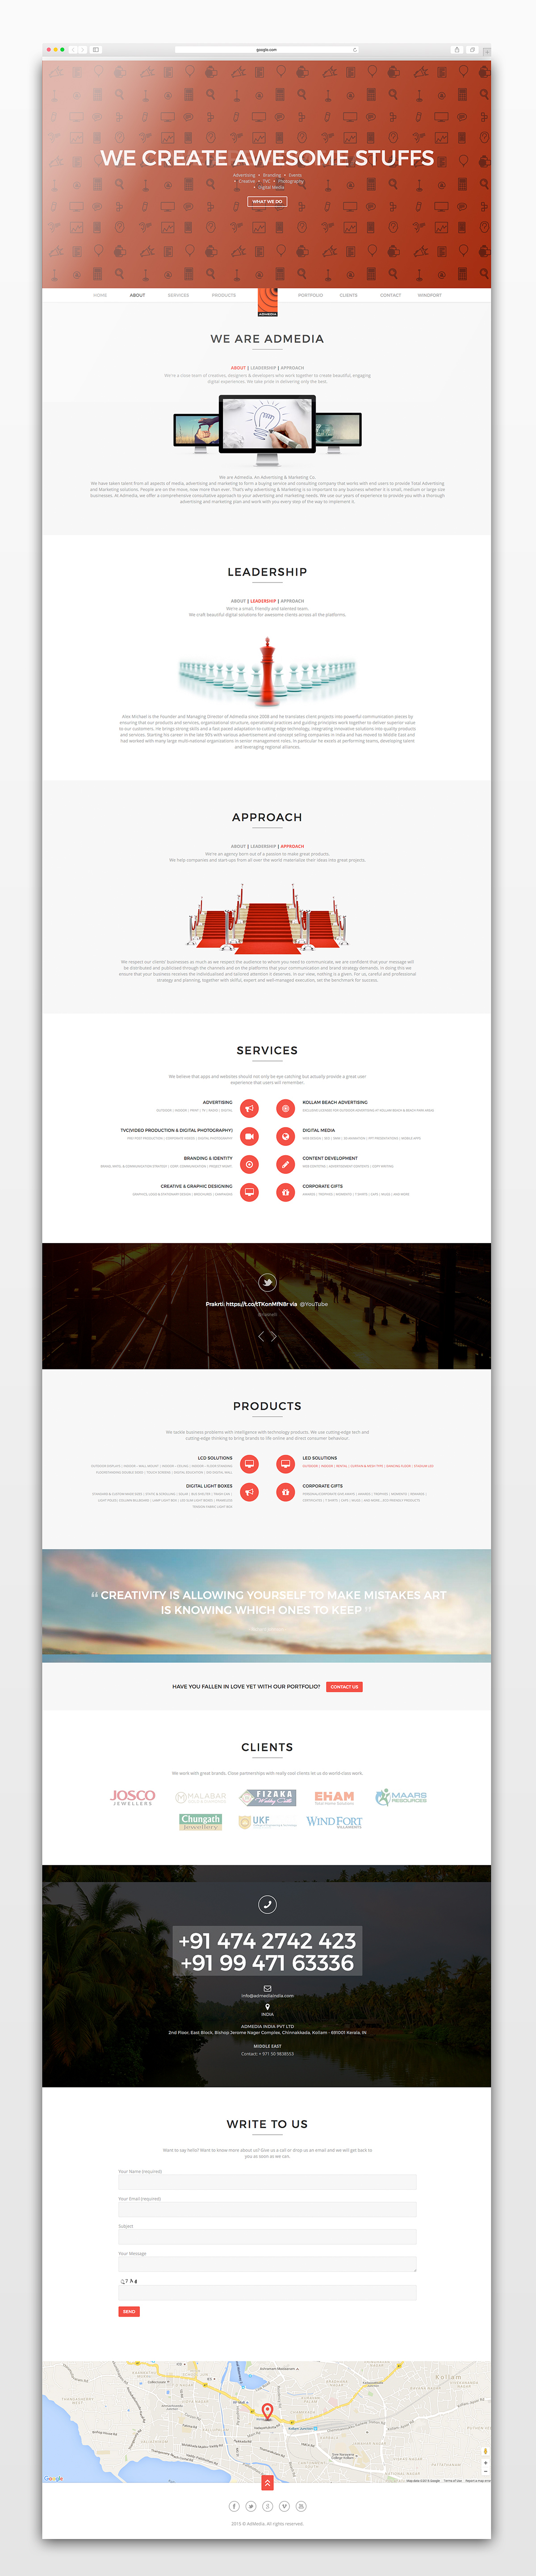 ad_agency_website_design